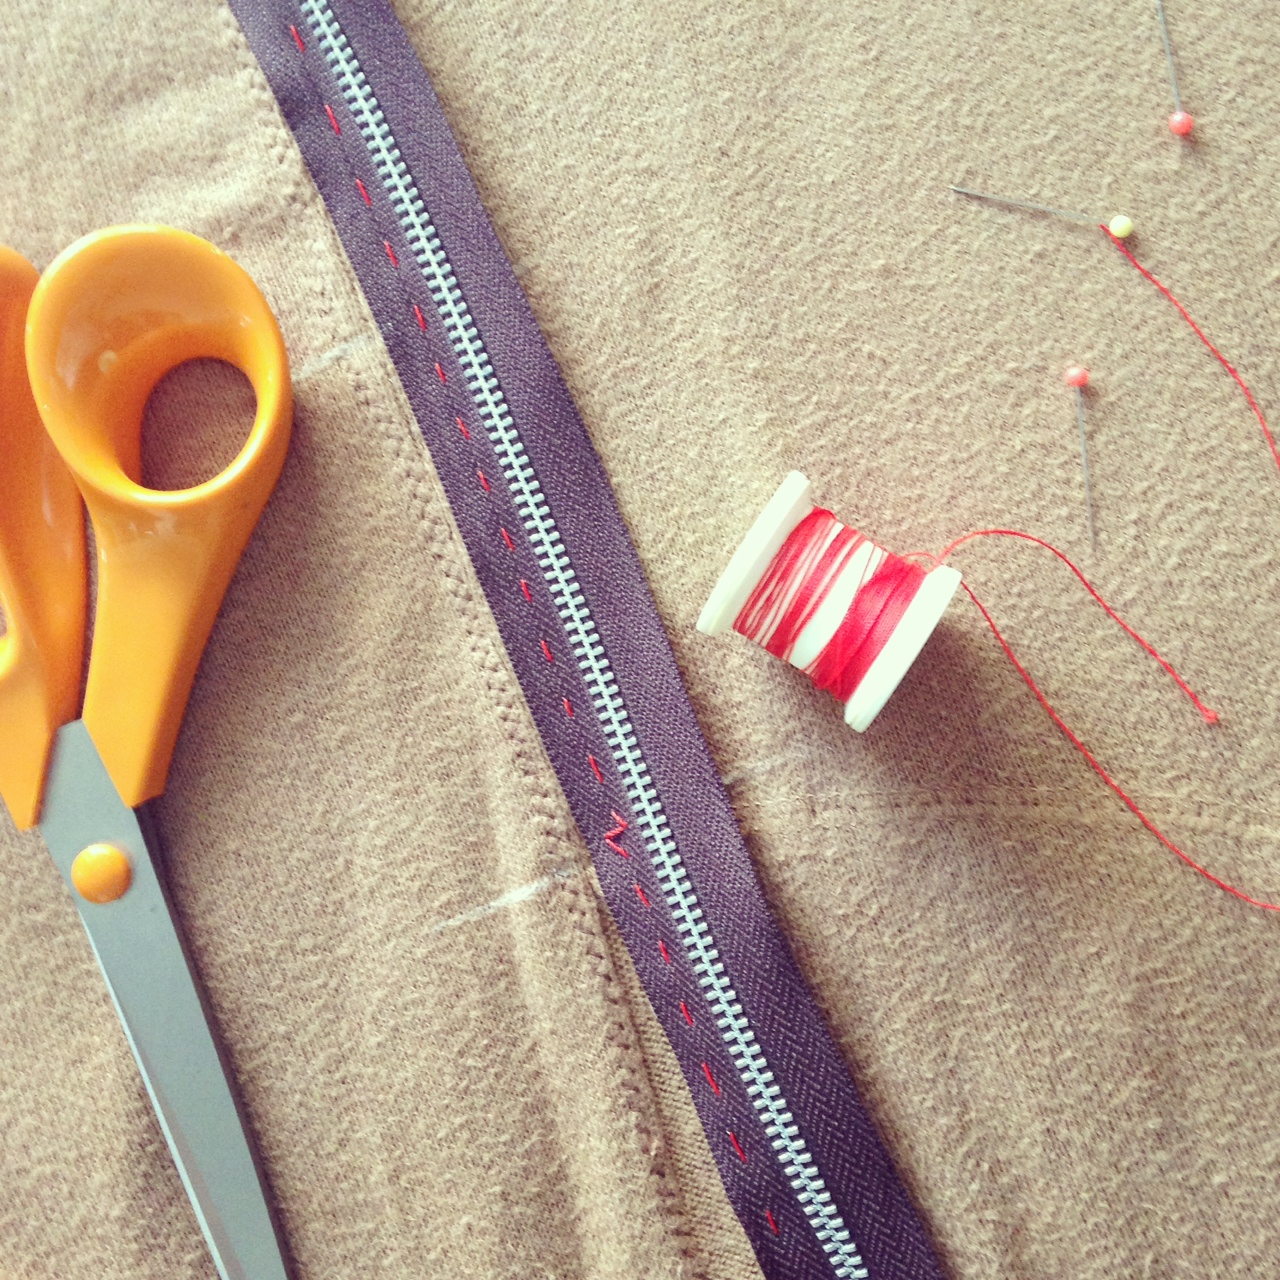 Sewing zip to knitwear